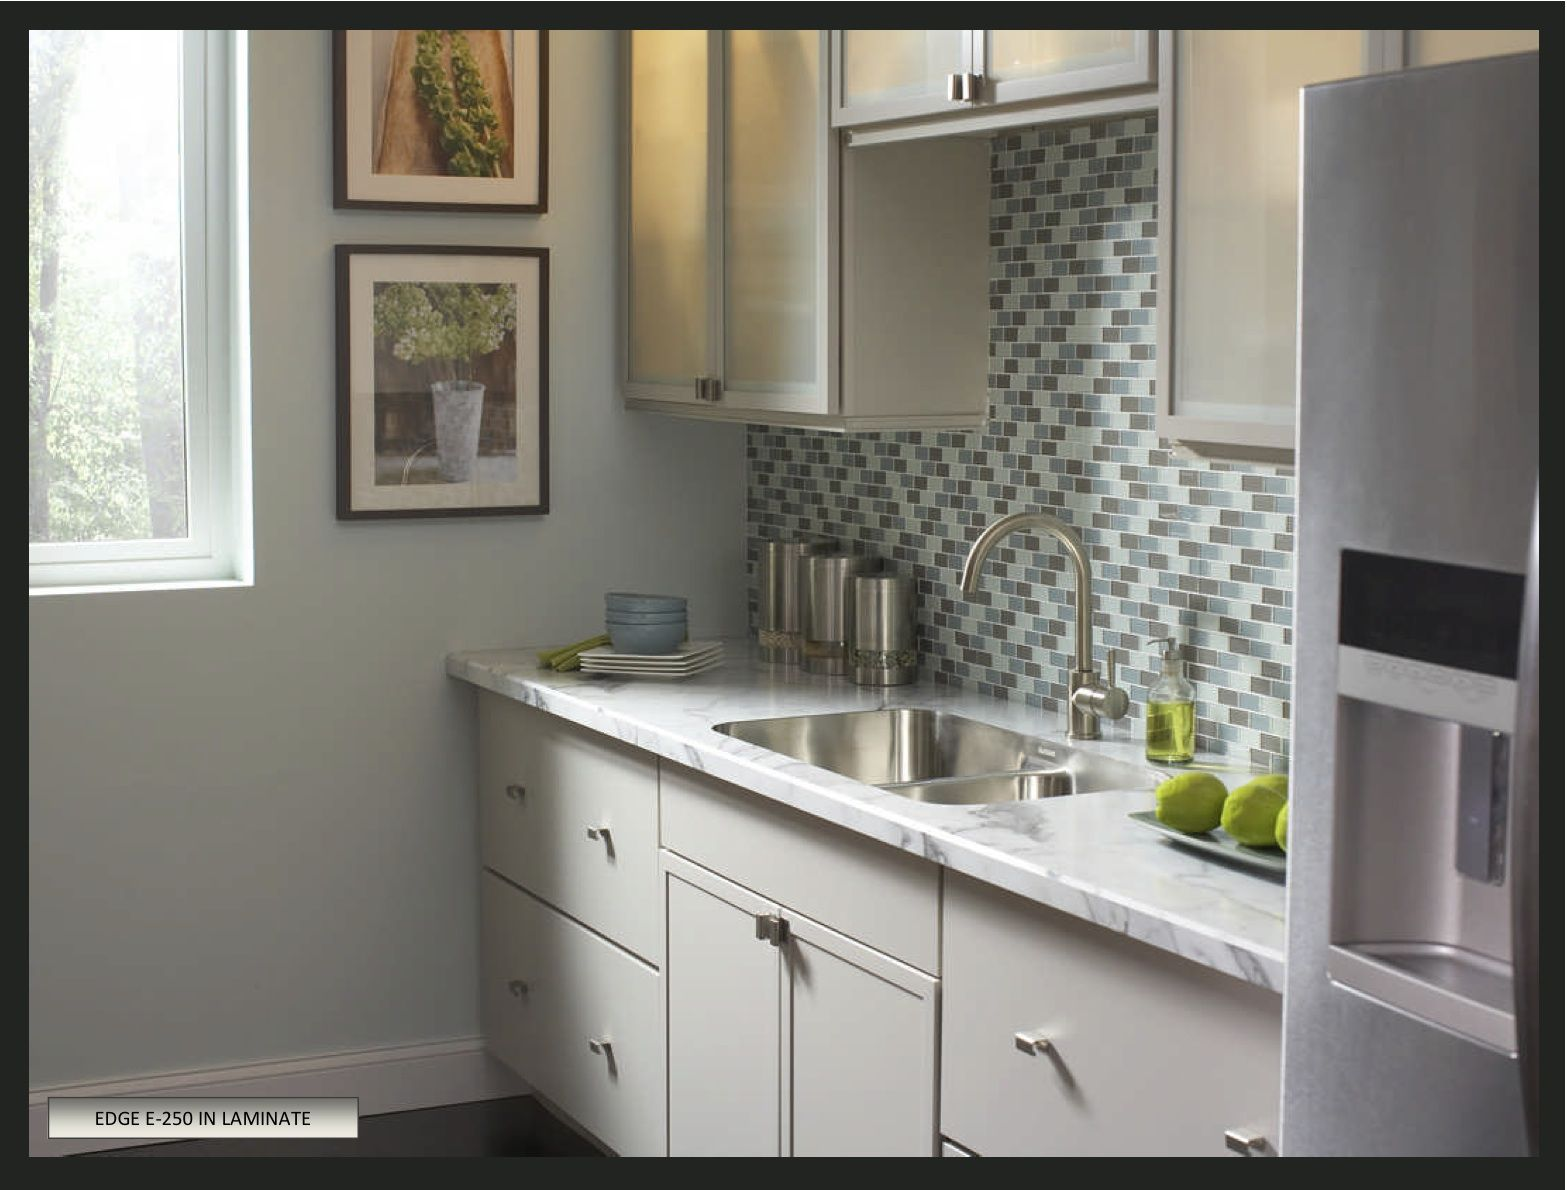 Stall Küchen Could Be An Inexpensive Update To A Kitchen Or Bath. Could ...